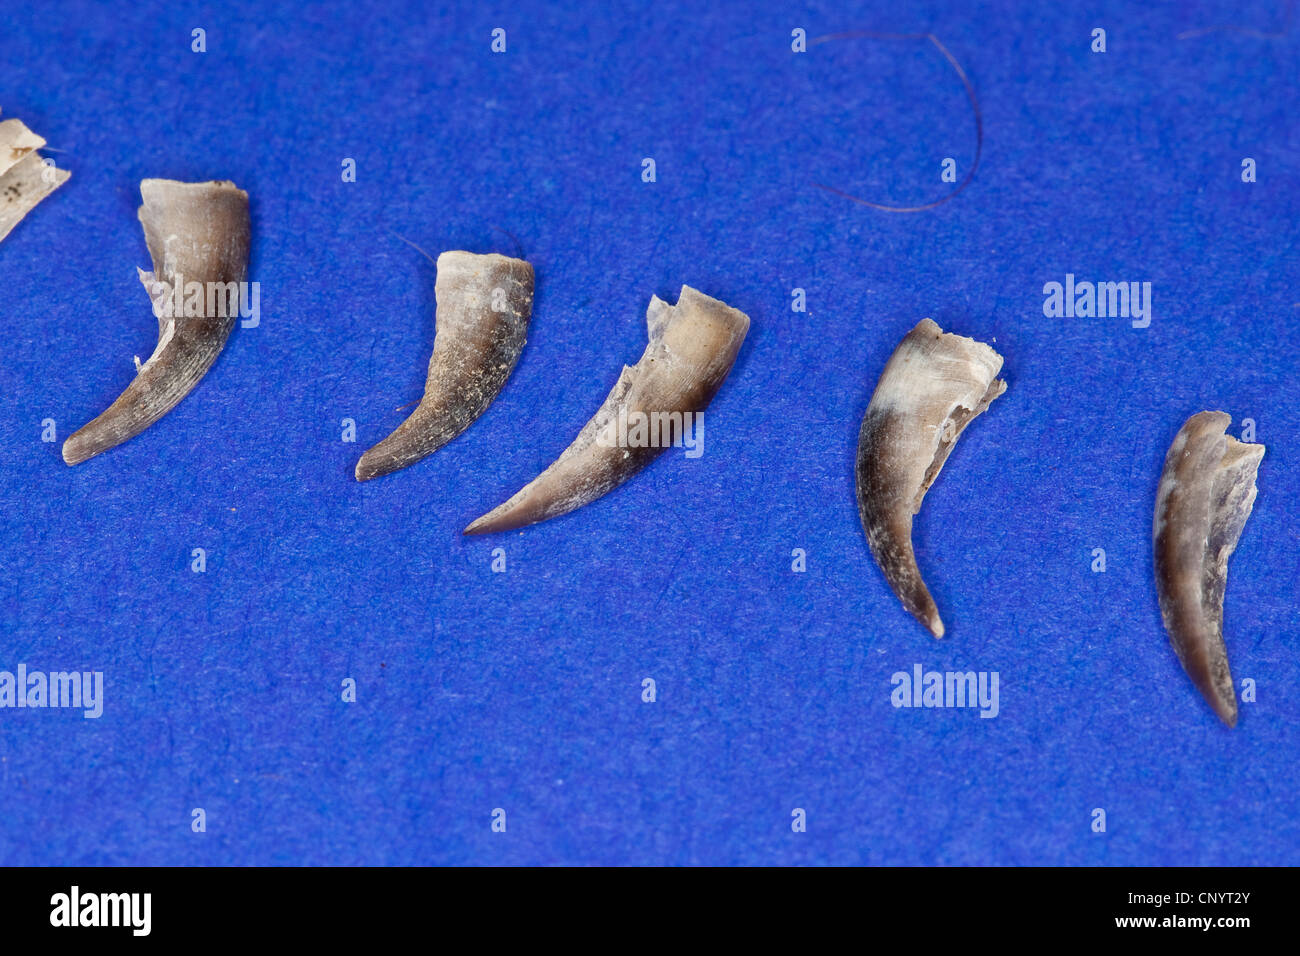 northern eagle owl (Bubo bubo), claws of a hedgehog - undigested food residue from a pellet - Stock Image